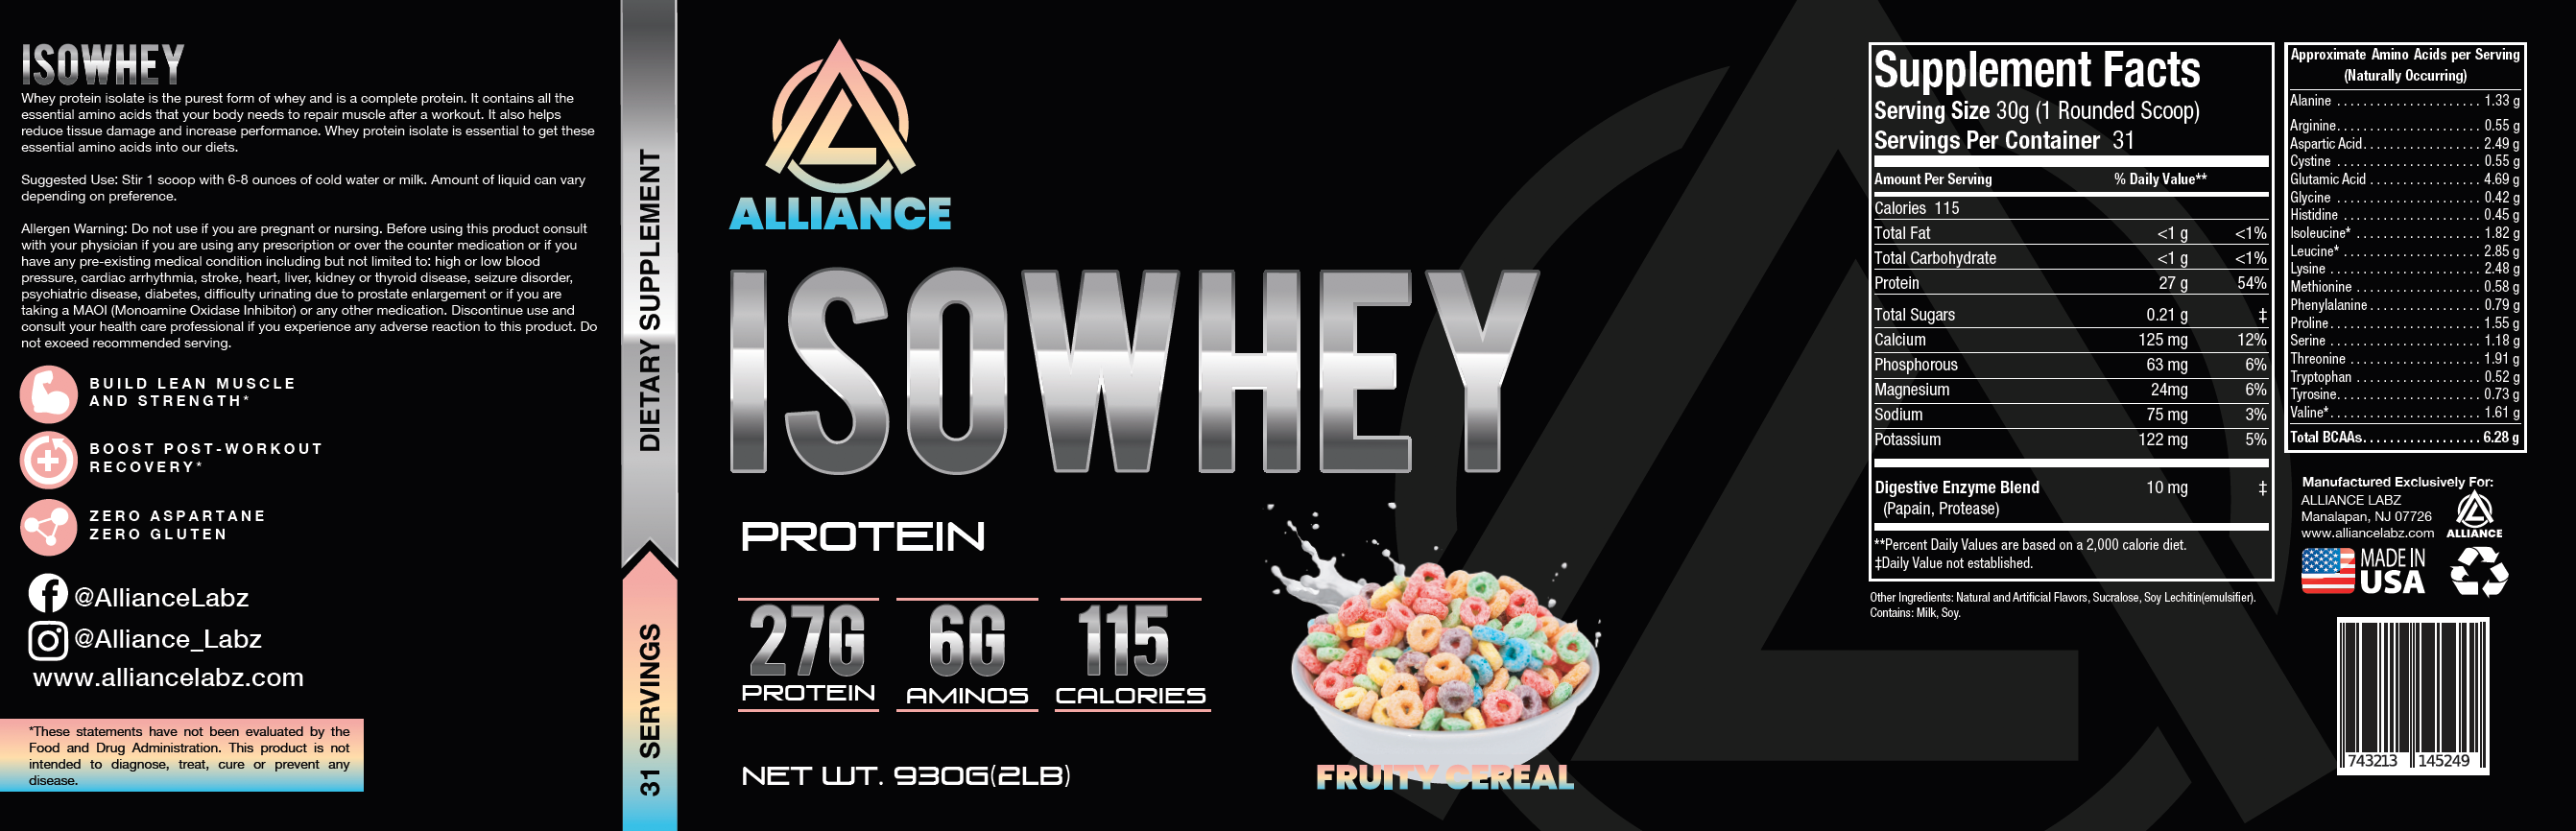 ISO Whey Protein Fruit Cereal -Facts